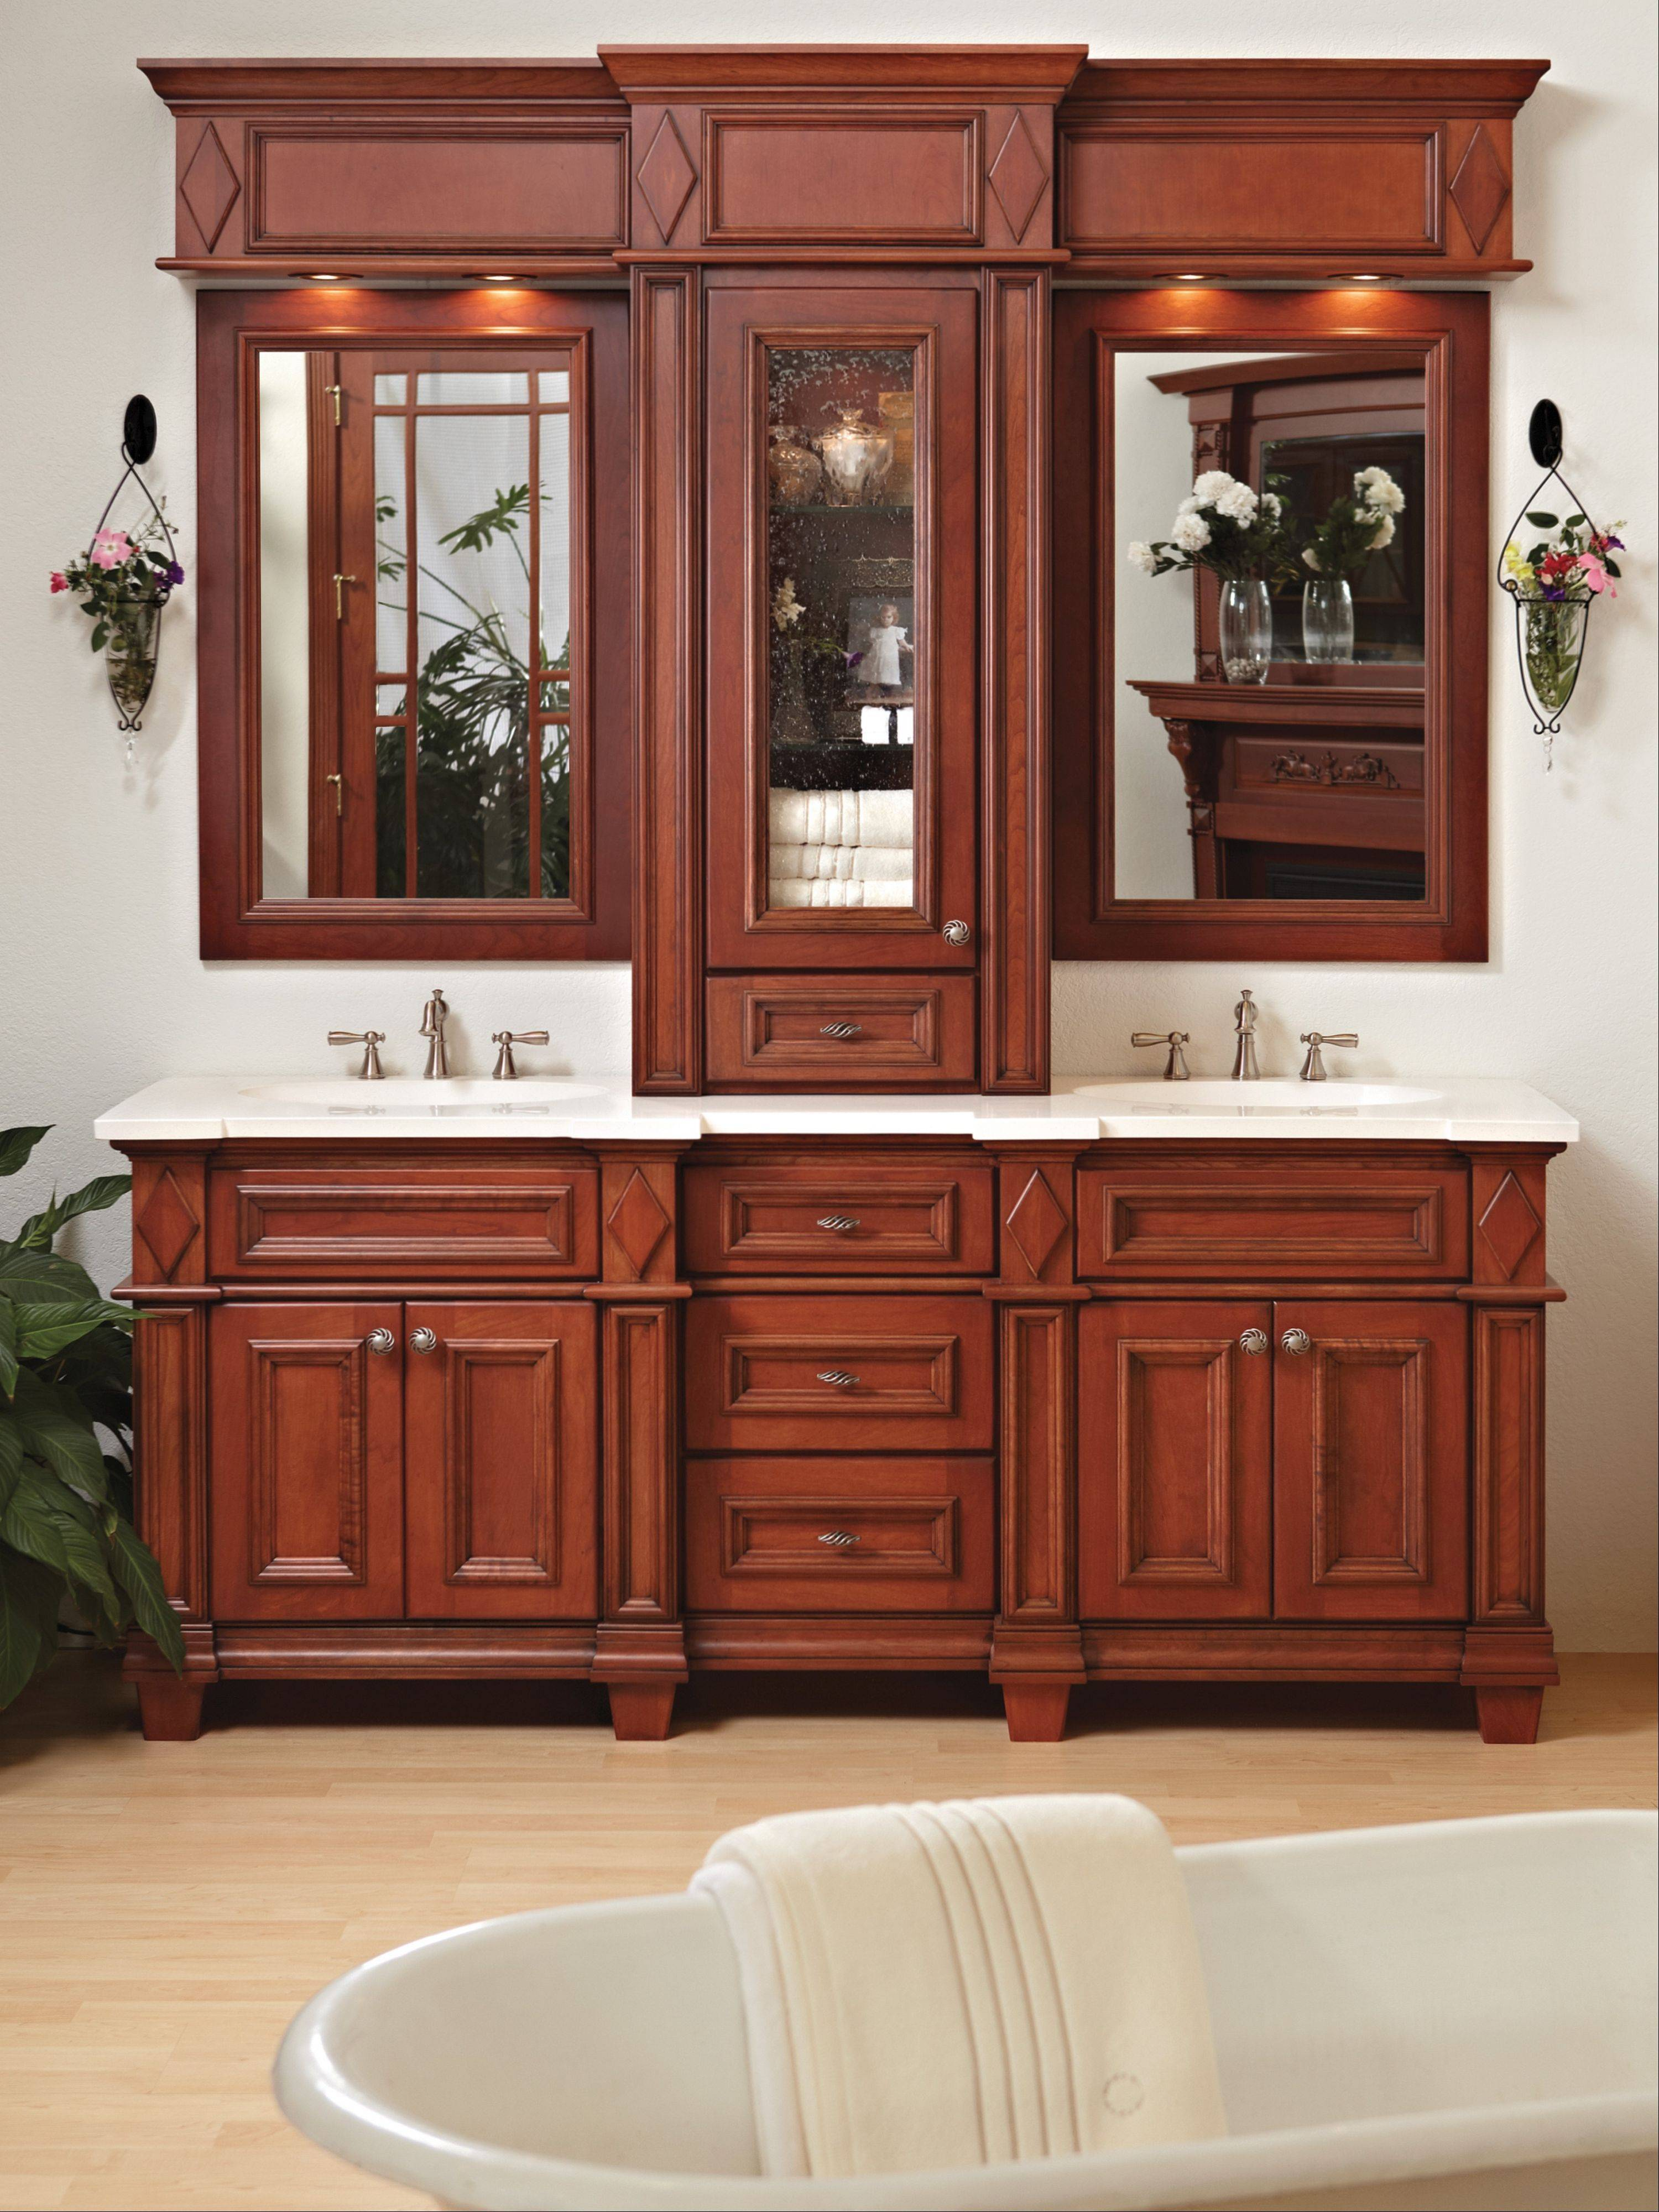 Most of the remodeling being done today involves new bathrooms. Today�s style is cabinets with feet that look more like free-standing pieces.